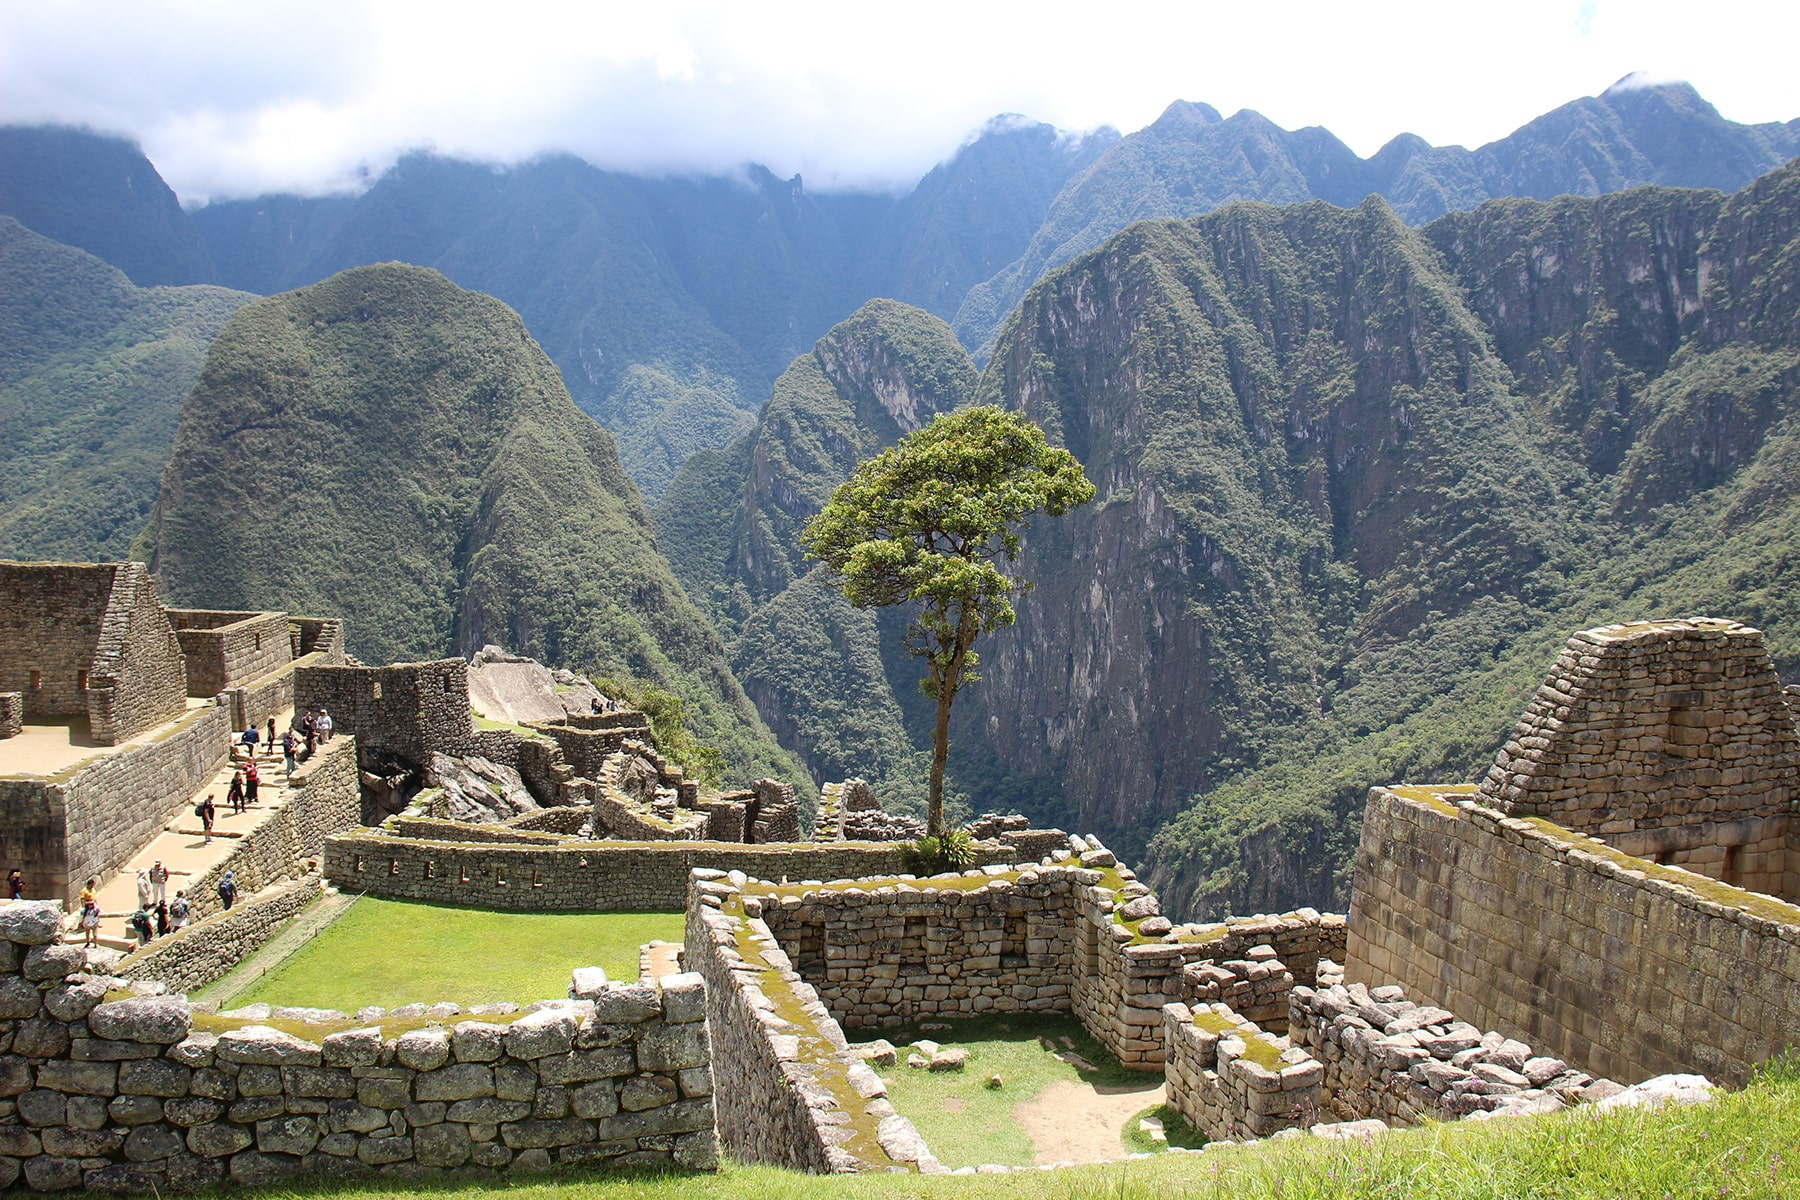 View on some buildings in Machu Picchu, ruins and mountains